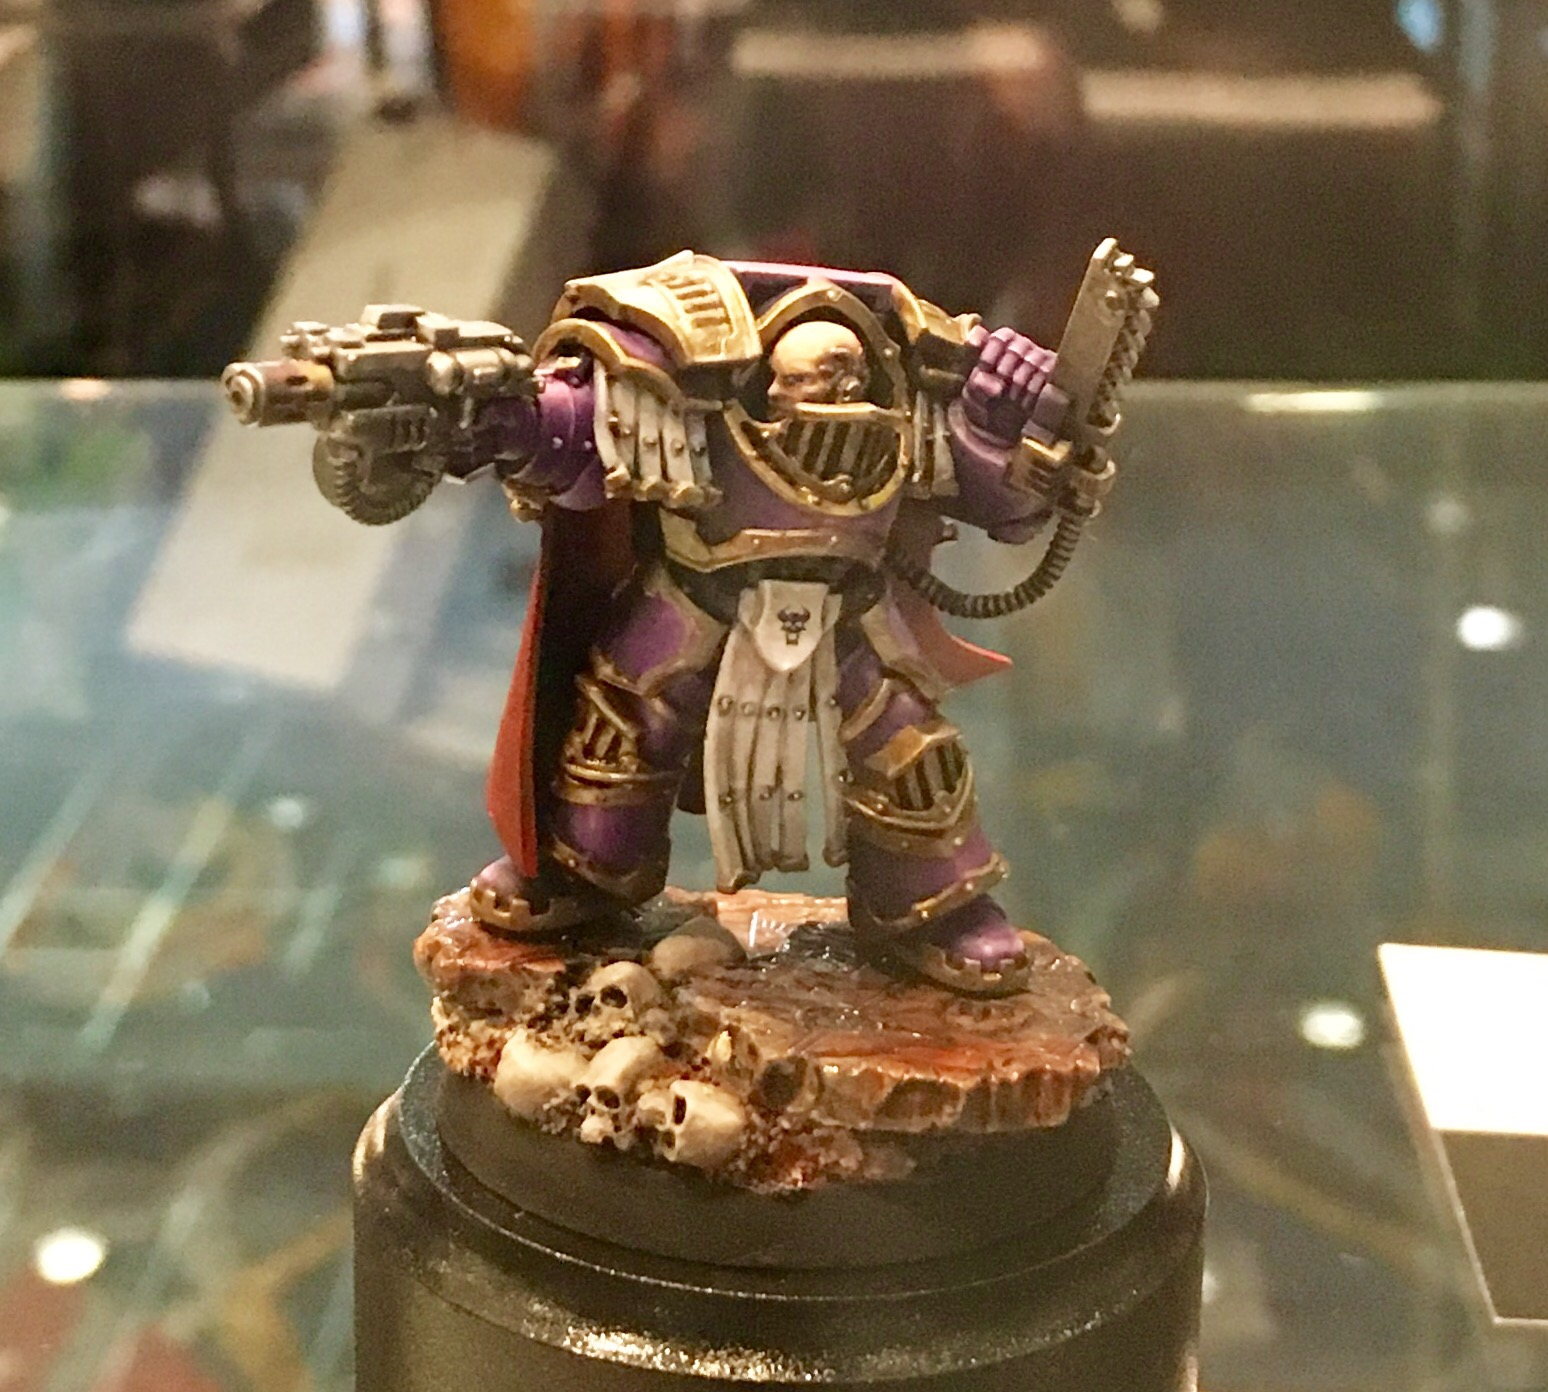 Geanstealer Magus and Lunor Wolves Chaplain Golden Demon 2017